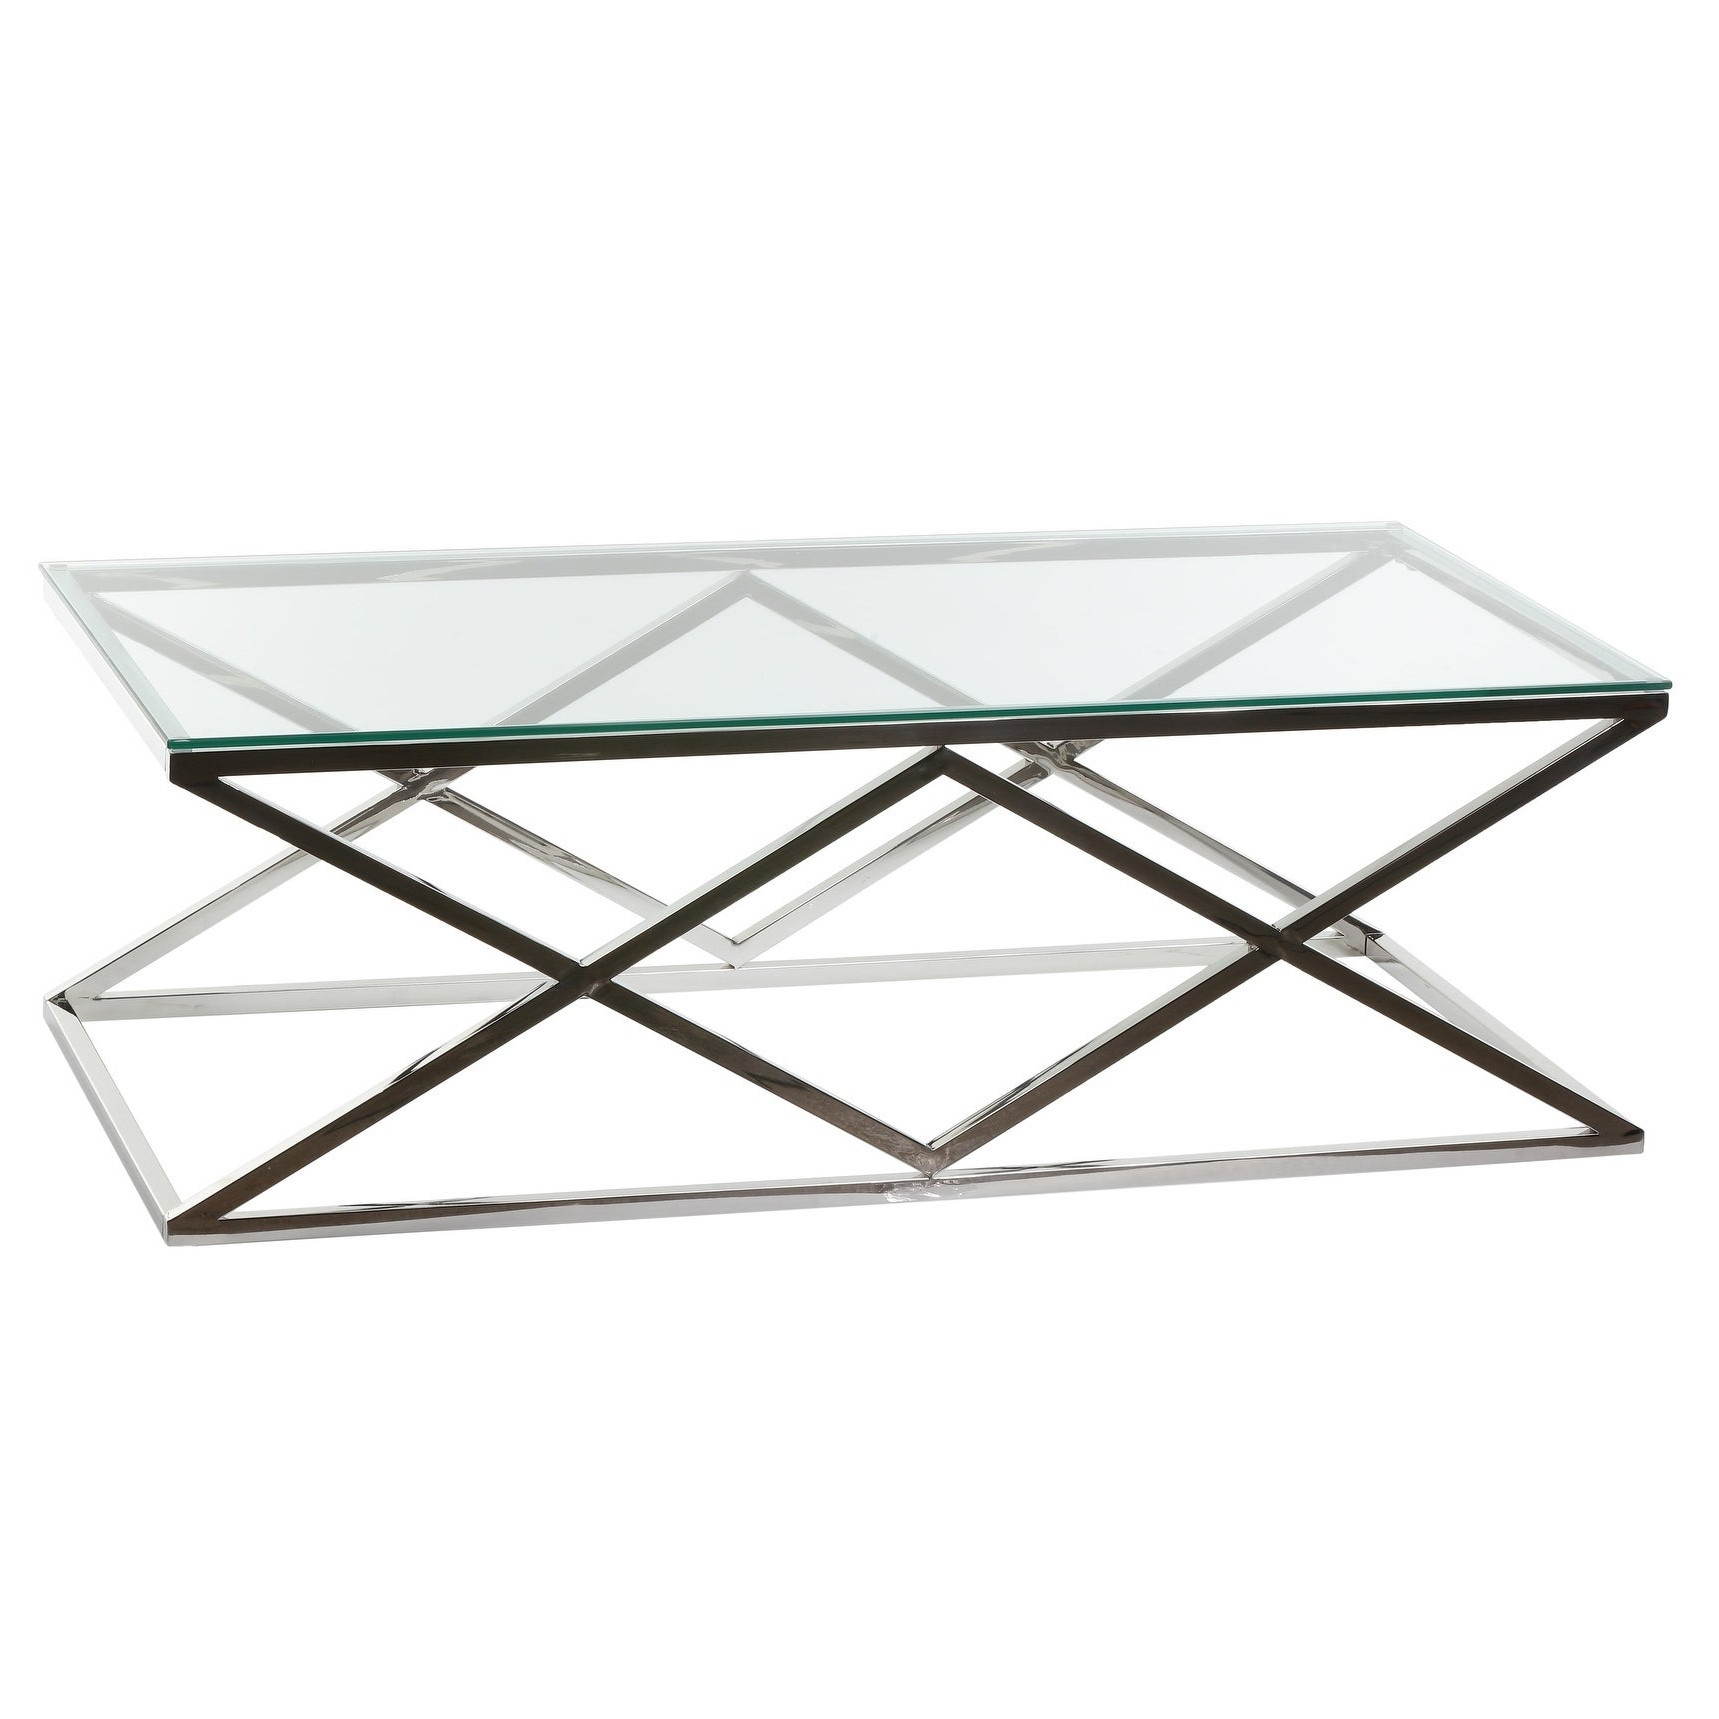 Cortesi Home Gwen Contemporary Glass Coffee Table Pertaining To Current Cortesi Home Remi Contemporary Chrome Glass Coffee Tables (View 4 of 20)